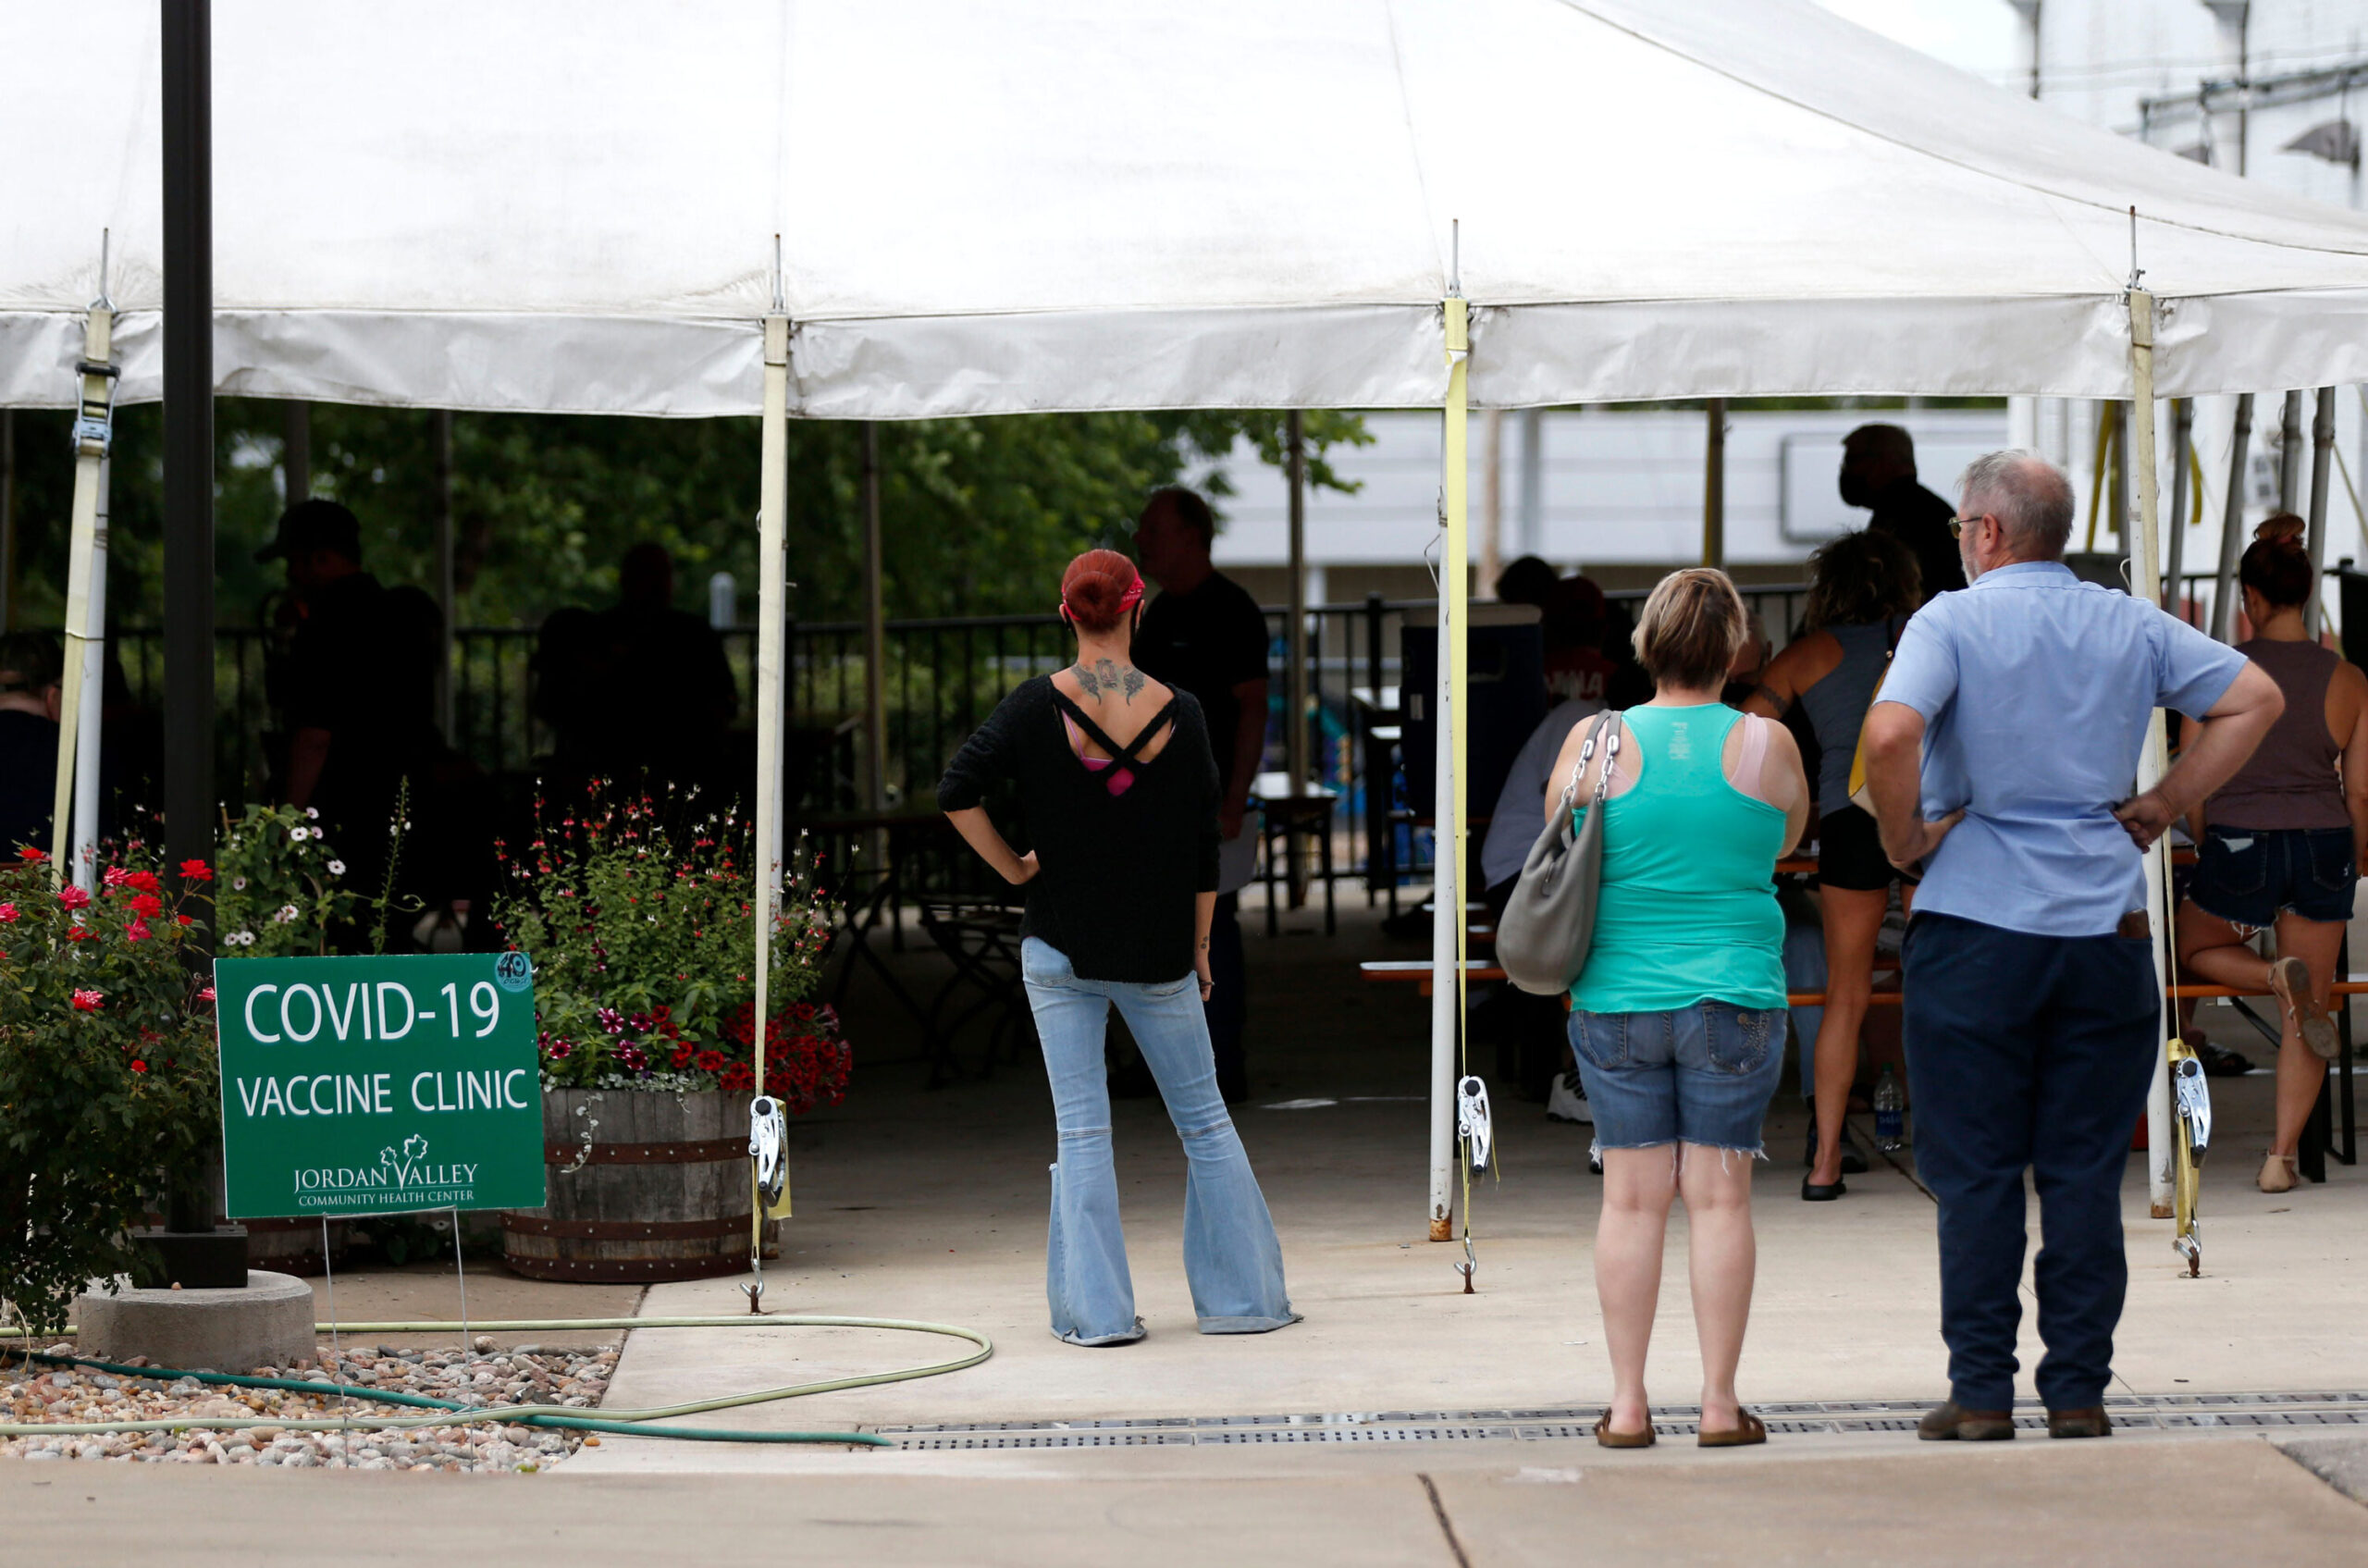 <i>Nathan Papes/Springfield News-Leader/Imagn</i><br/>People line up for the vaccine at Mother's Brewing Company in Springfield